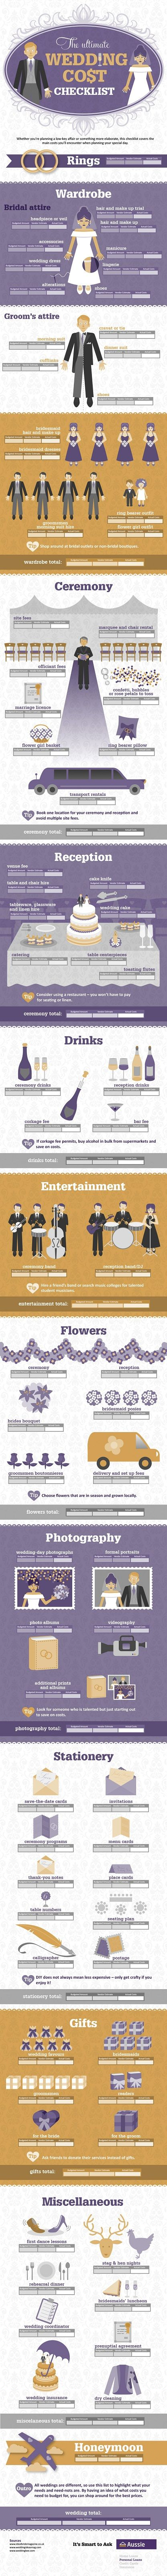 The Ultimate Wedding Cost Checklist Infographic - this thing is ridiculously detailed...